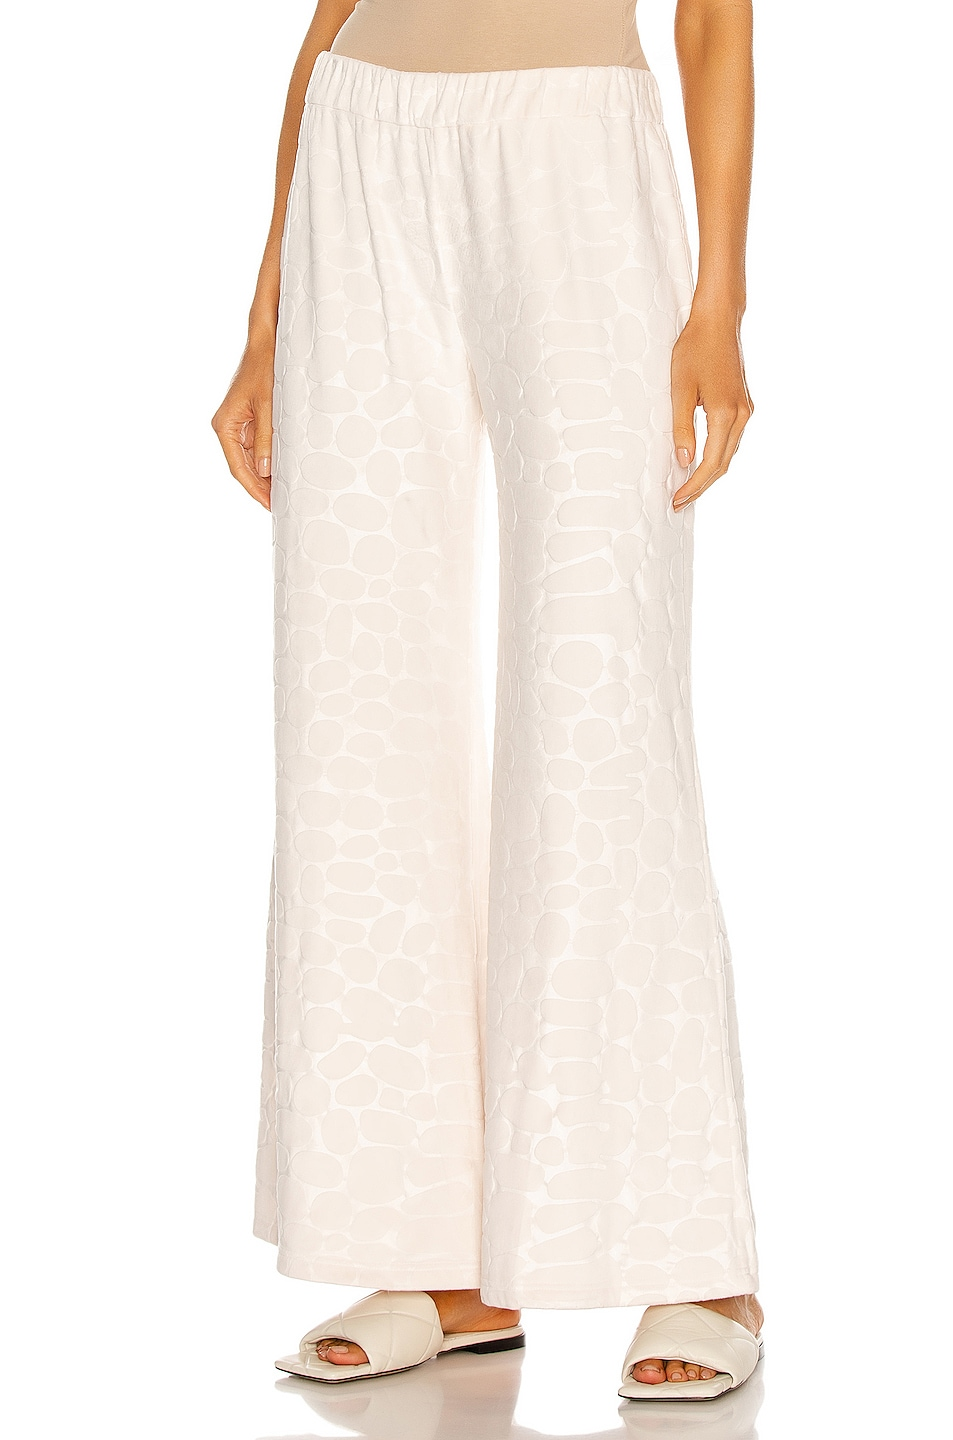 Image 1 of Alexis Reman Pant in White